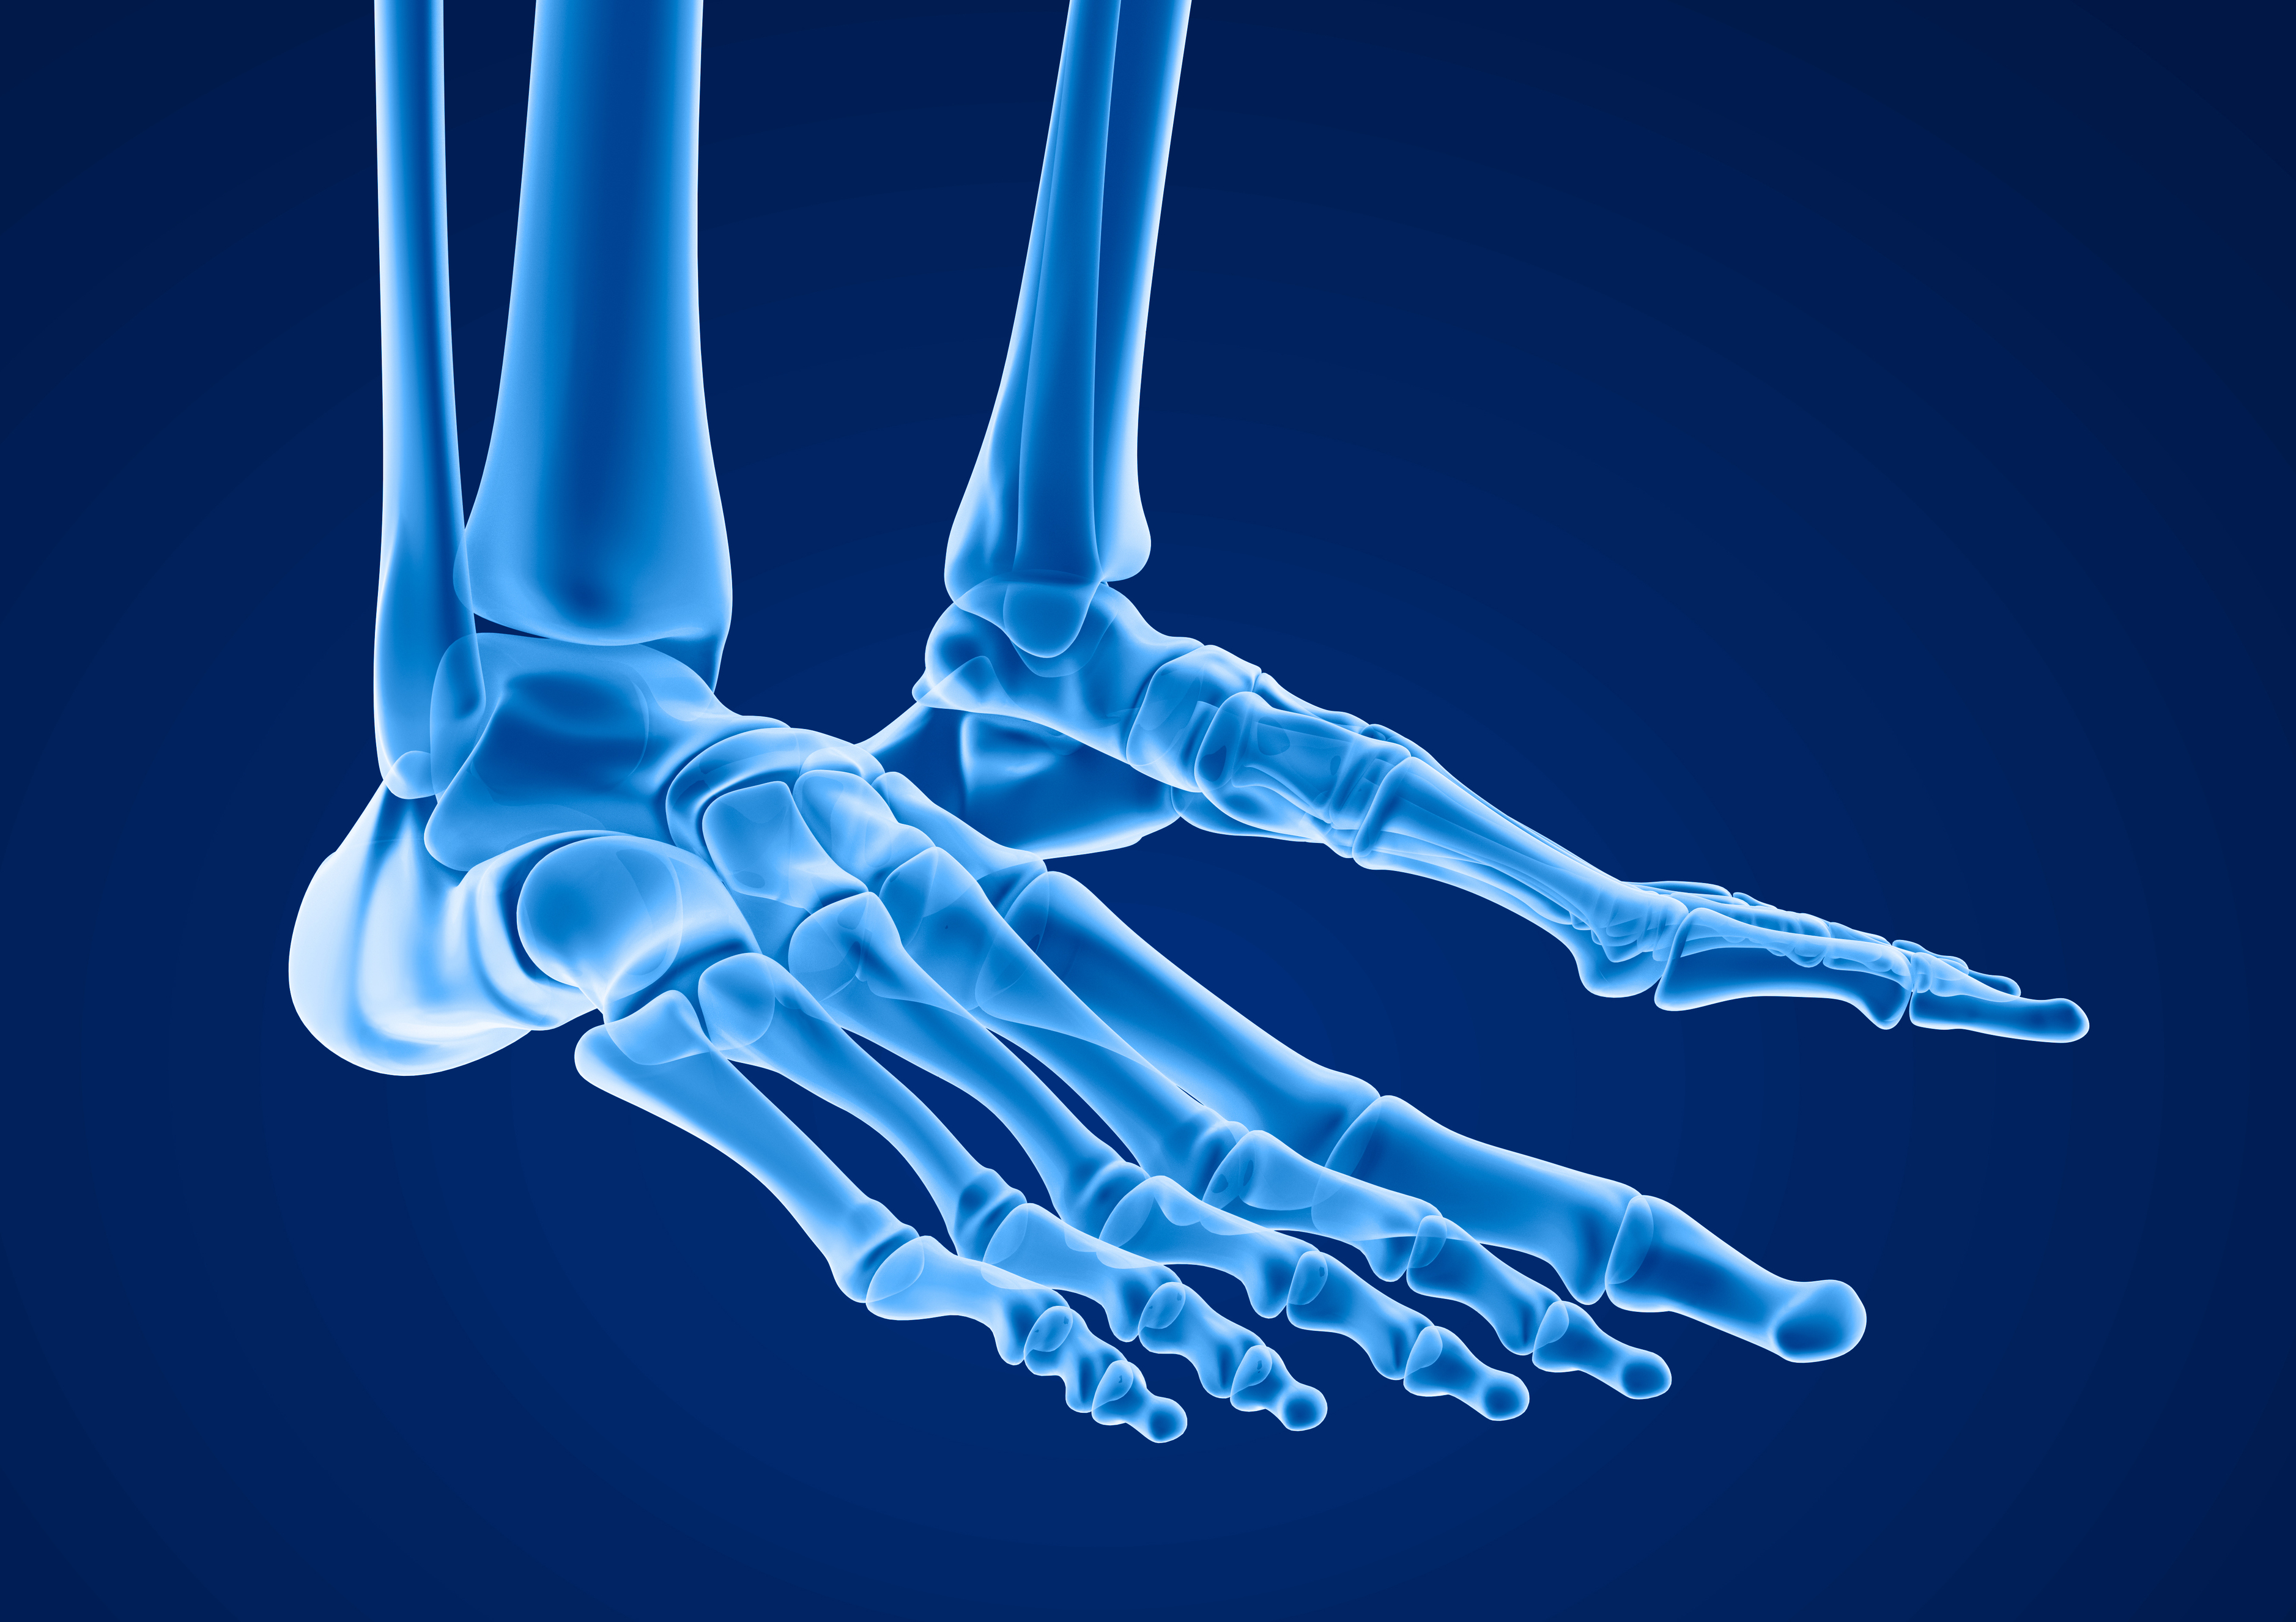 x-ray image of foot